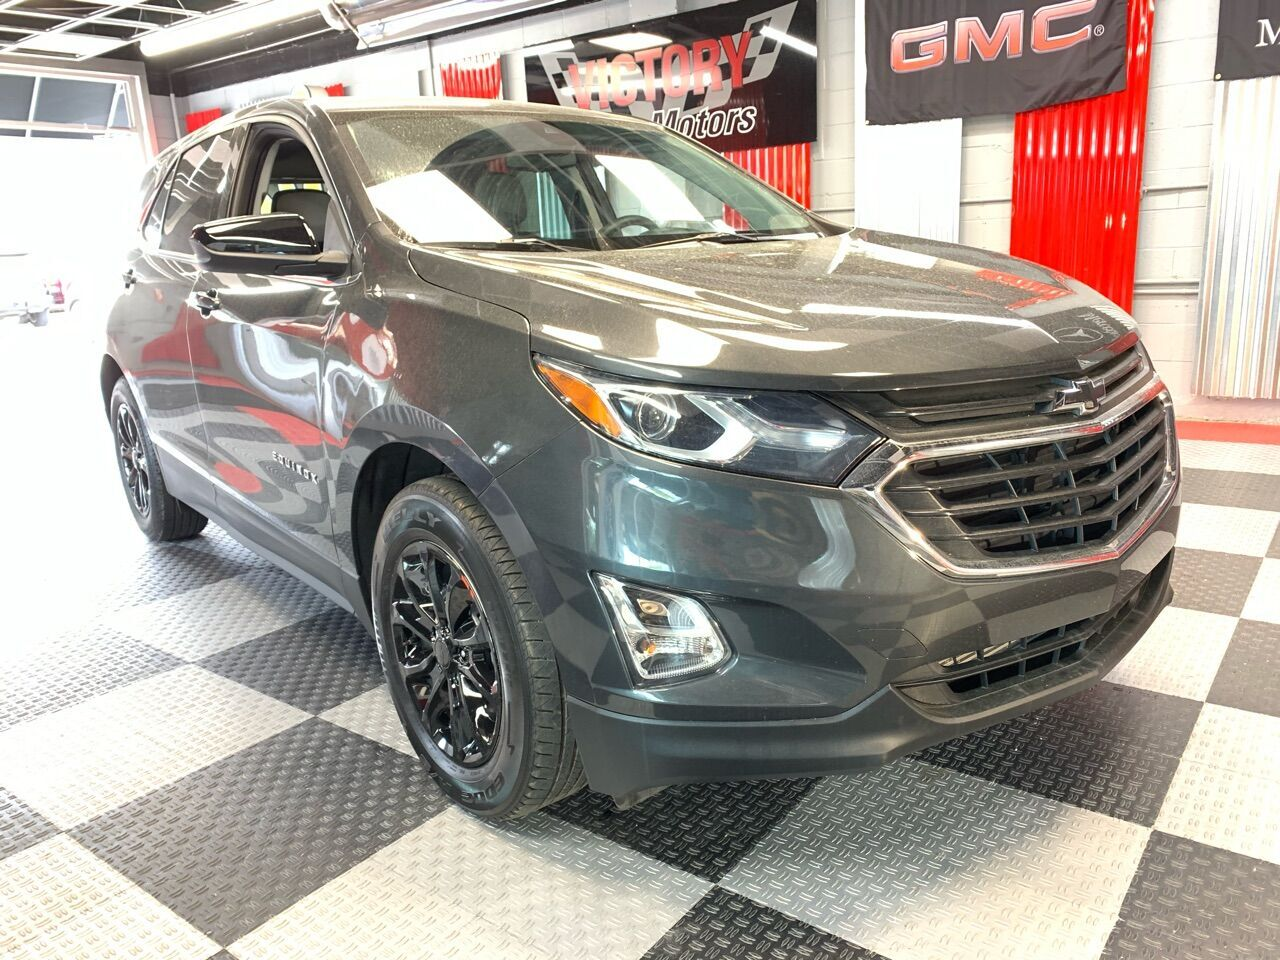 2020 Chevrolet Equinox LT 4dr SUV w/1LT Royal Oak MI